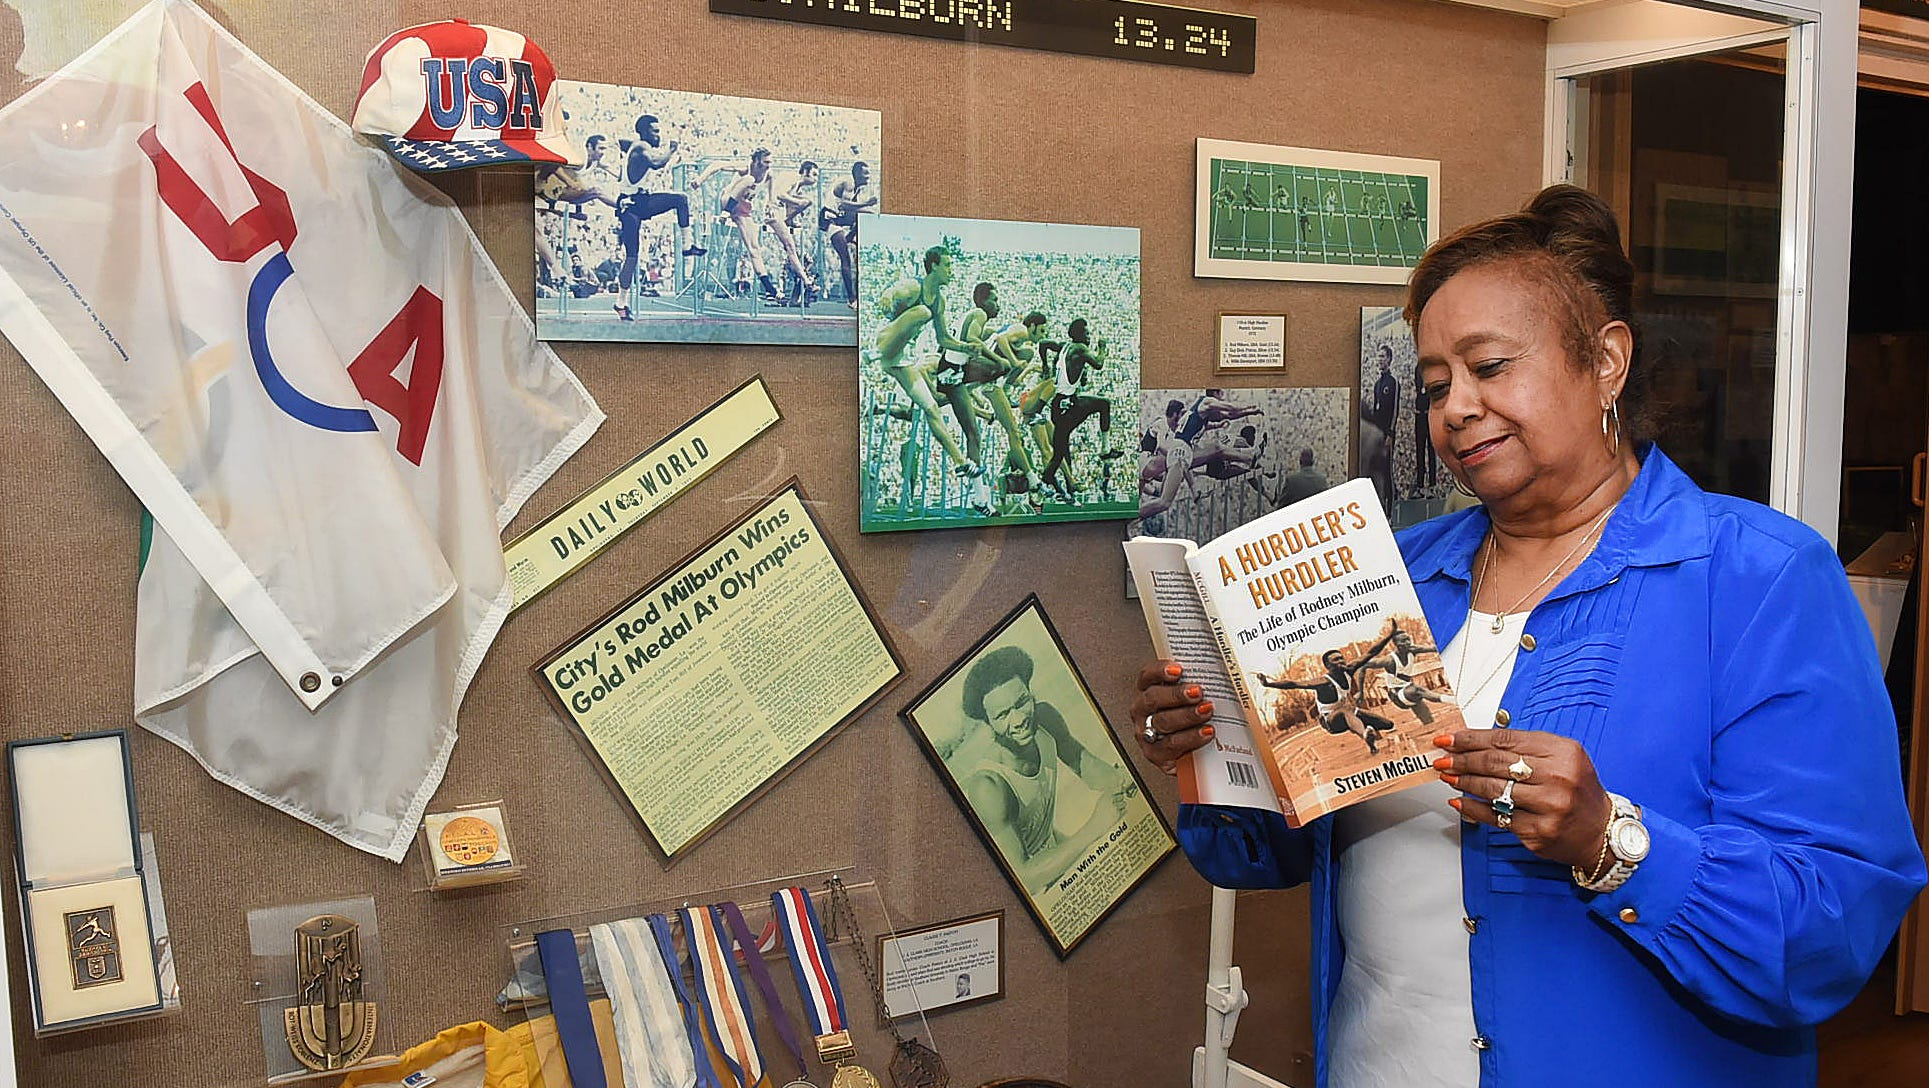 Lena Charles looks over a copy of the new biography of Olympic gold medalist Rodney Milburn at Milburn exhibit at the Opelousas Museum and Interpretive Center.